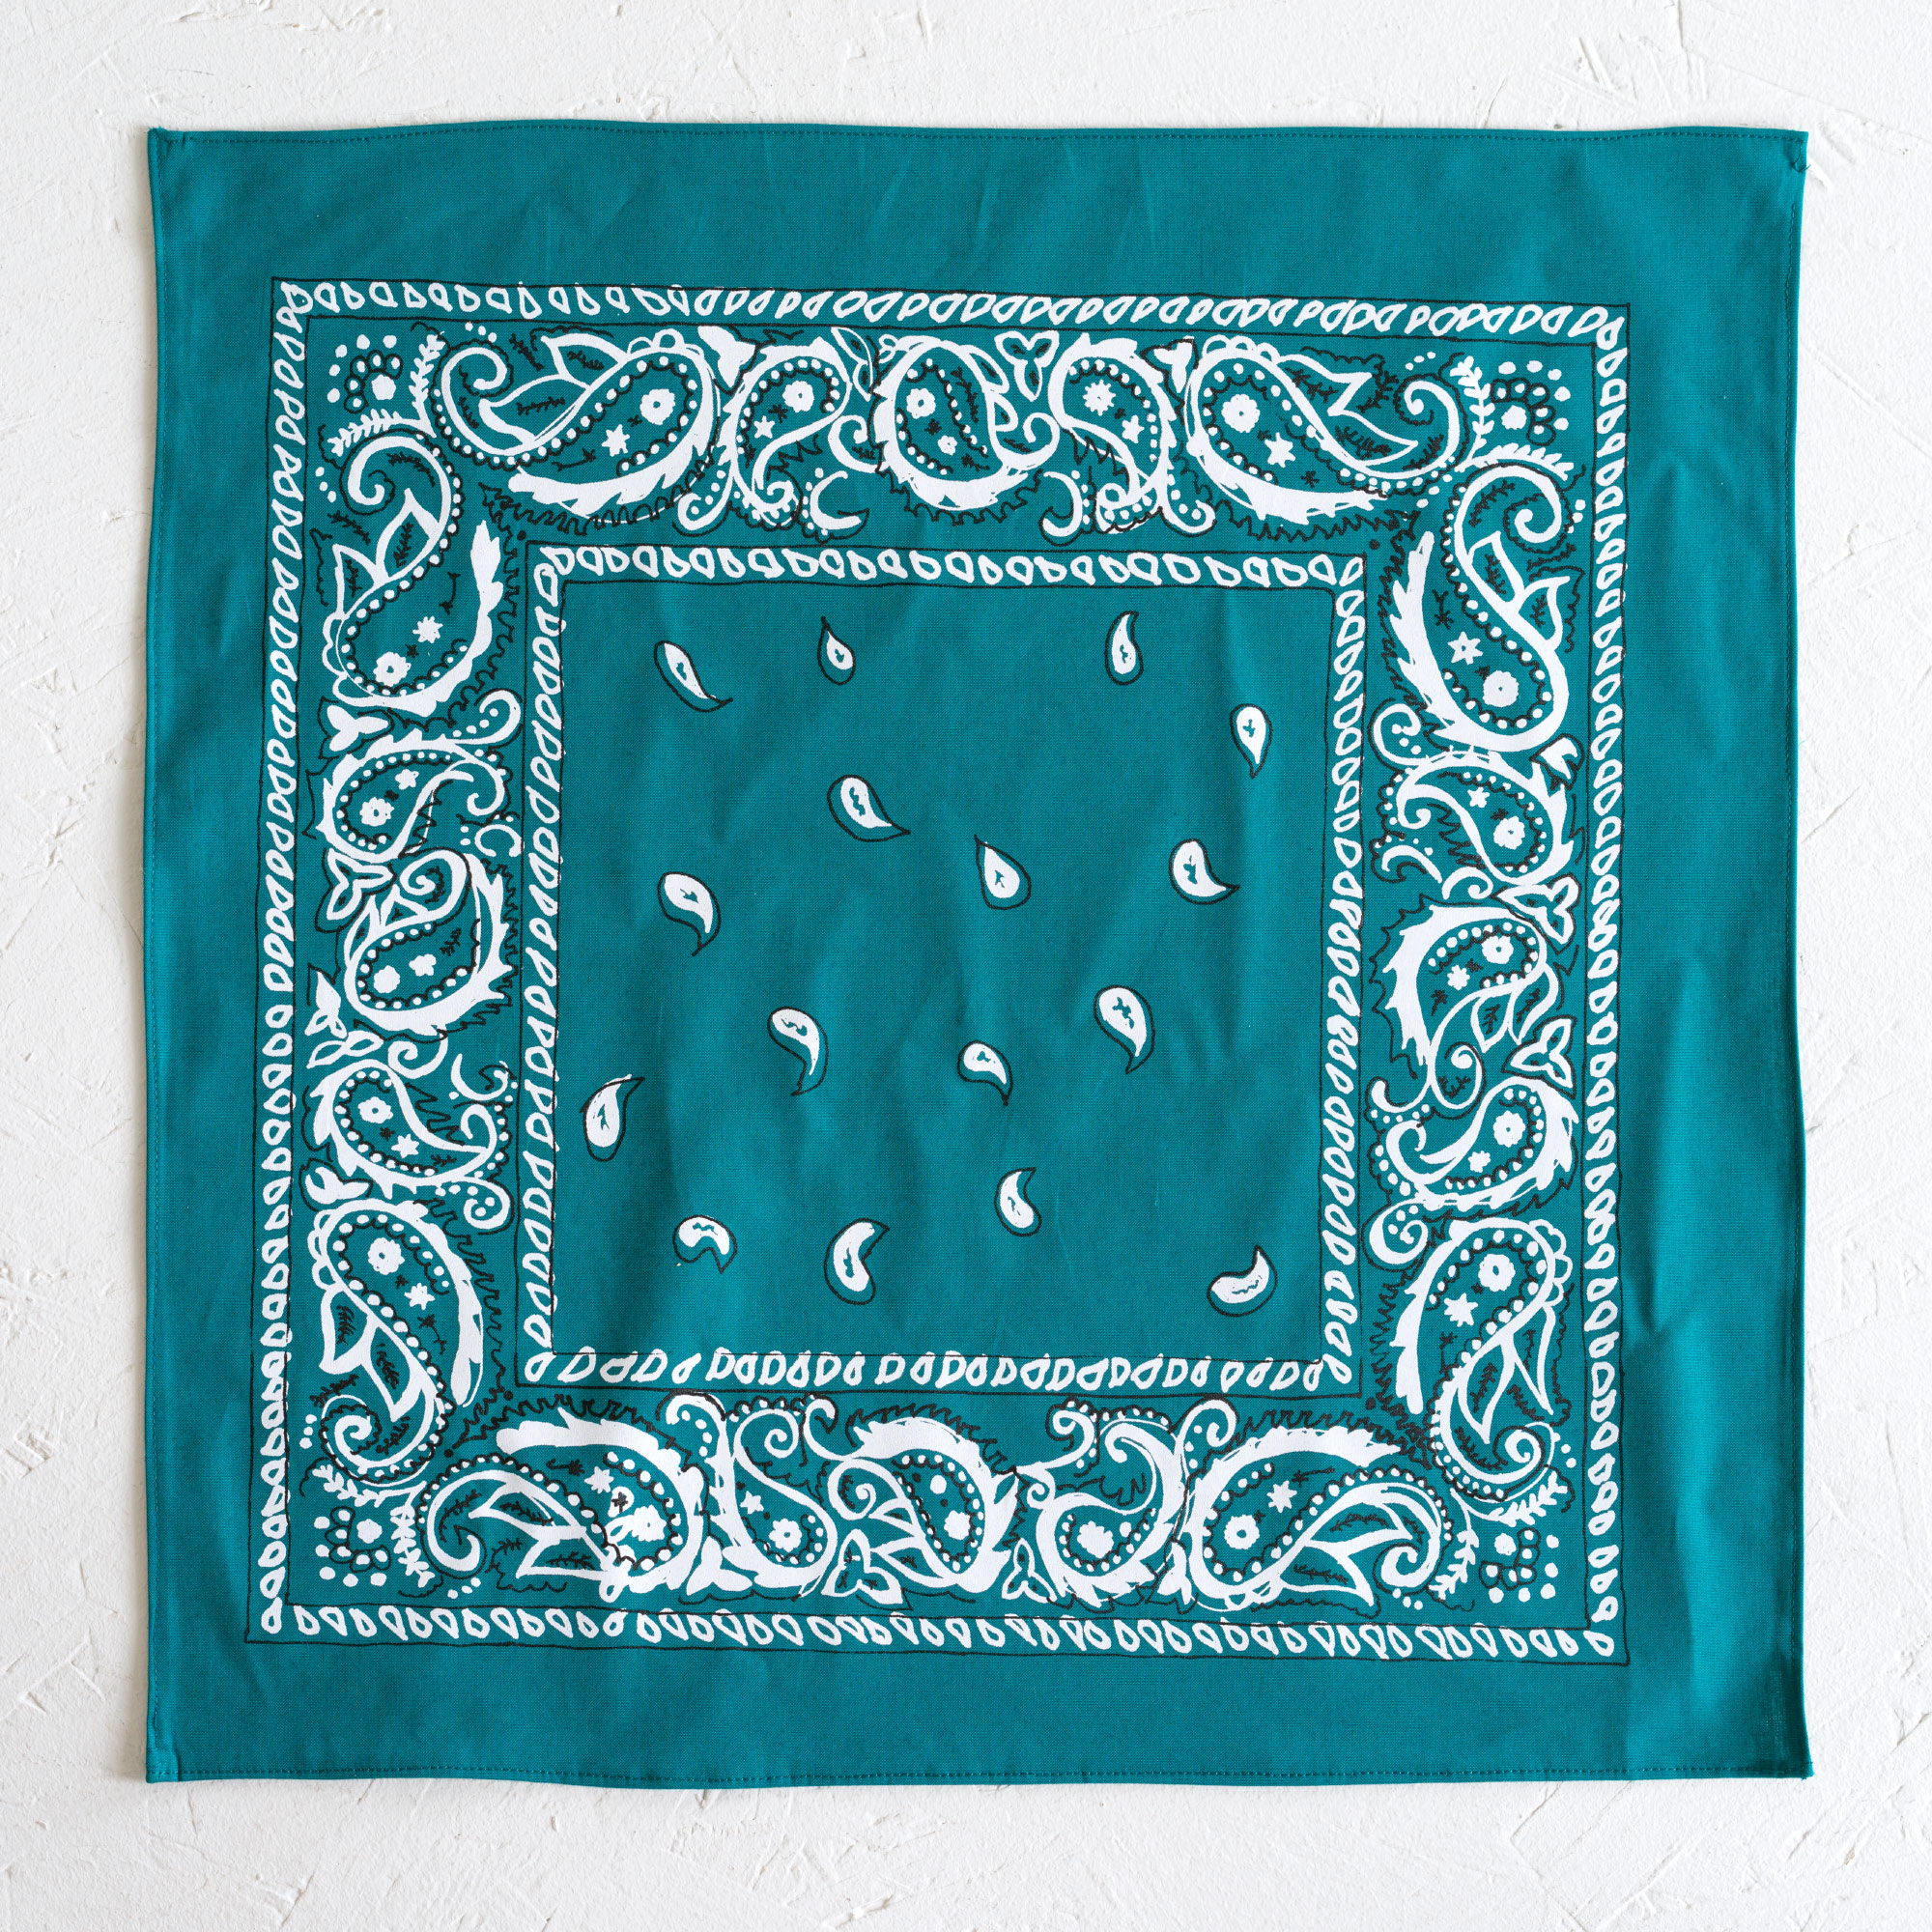 Nancy Davidson, *Hanky Code* (Teal), 2016, Two color silkscreen on hand cut & sewn cotton, 17 x 17 inches (43.18 x 43.18 cm)